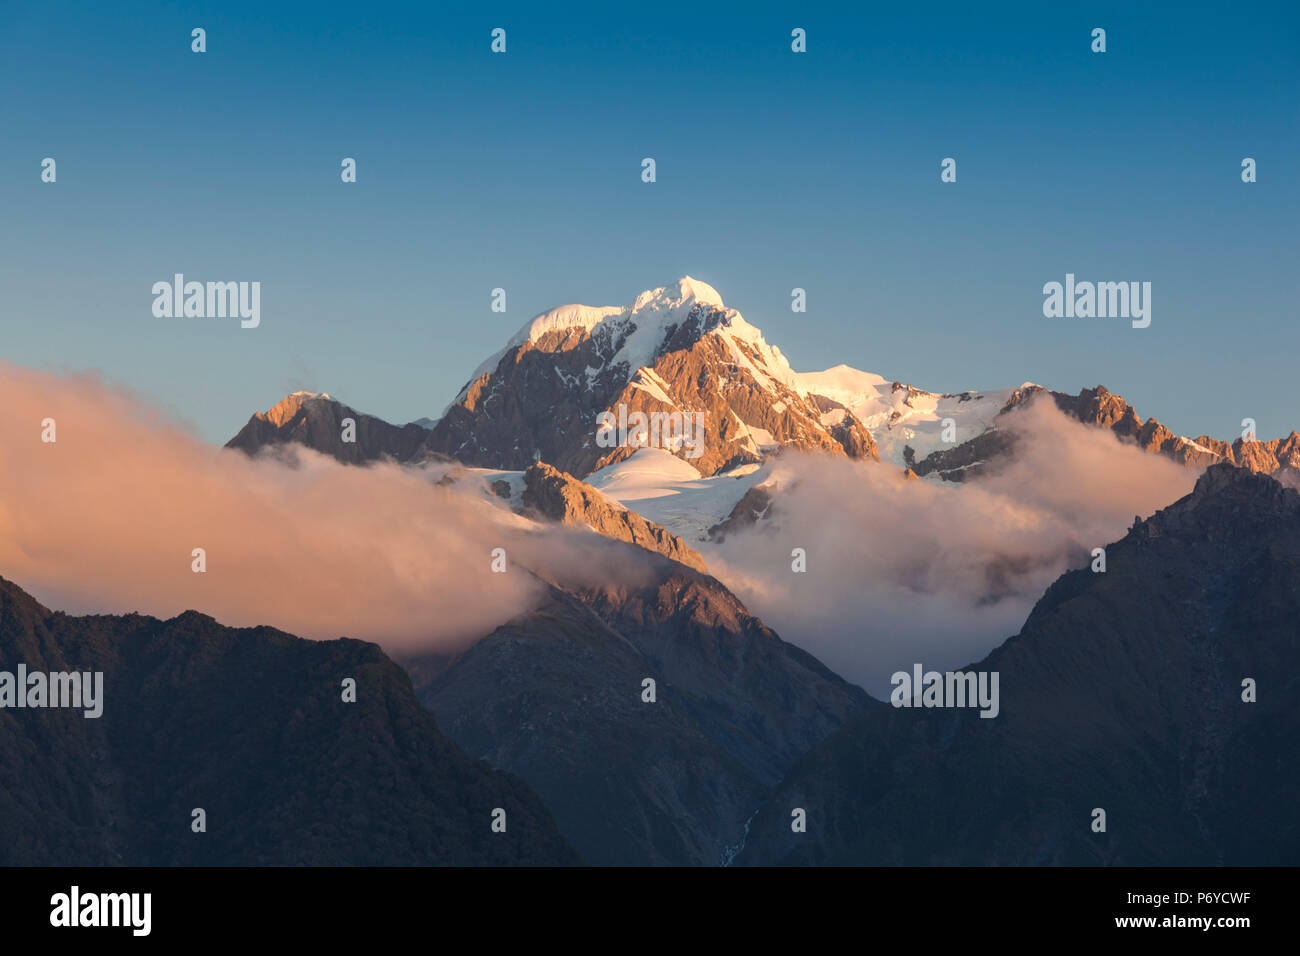 New Zealand, South Island, West Coast, Fox Glacier Village, Lake Matheson, reflection of Mt. Tasman and Mt. Cook, dusk - Stock Image